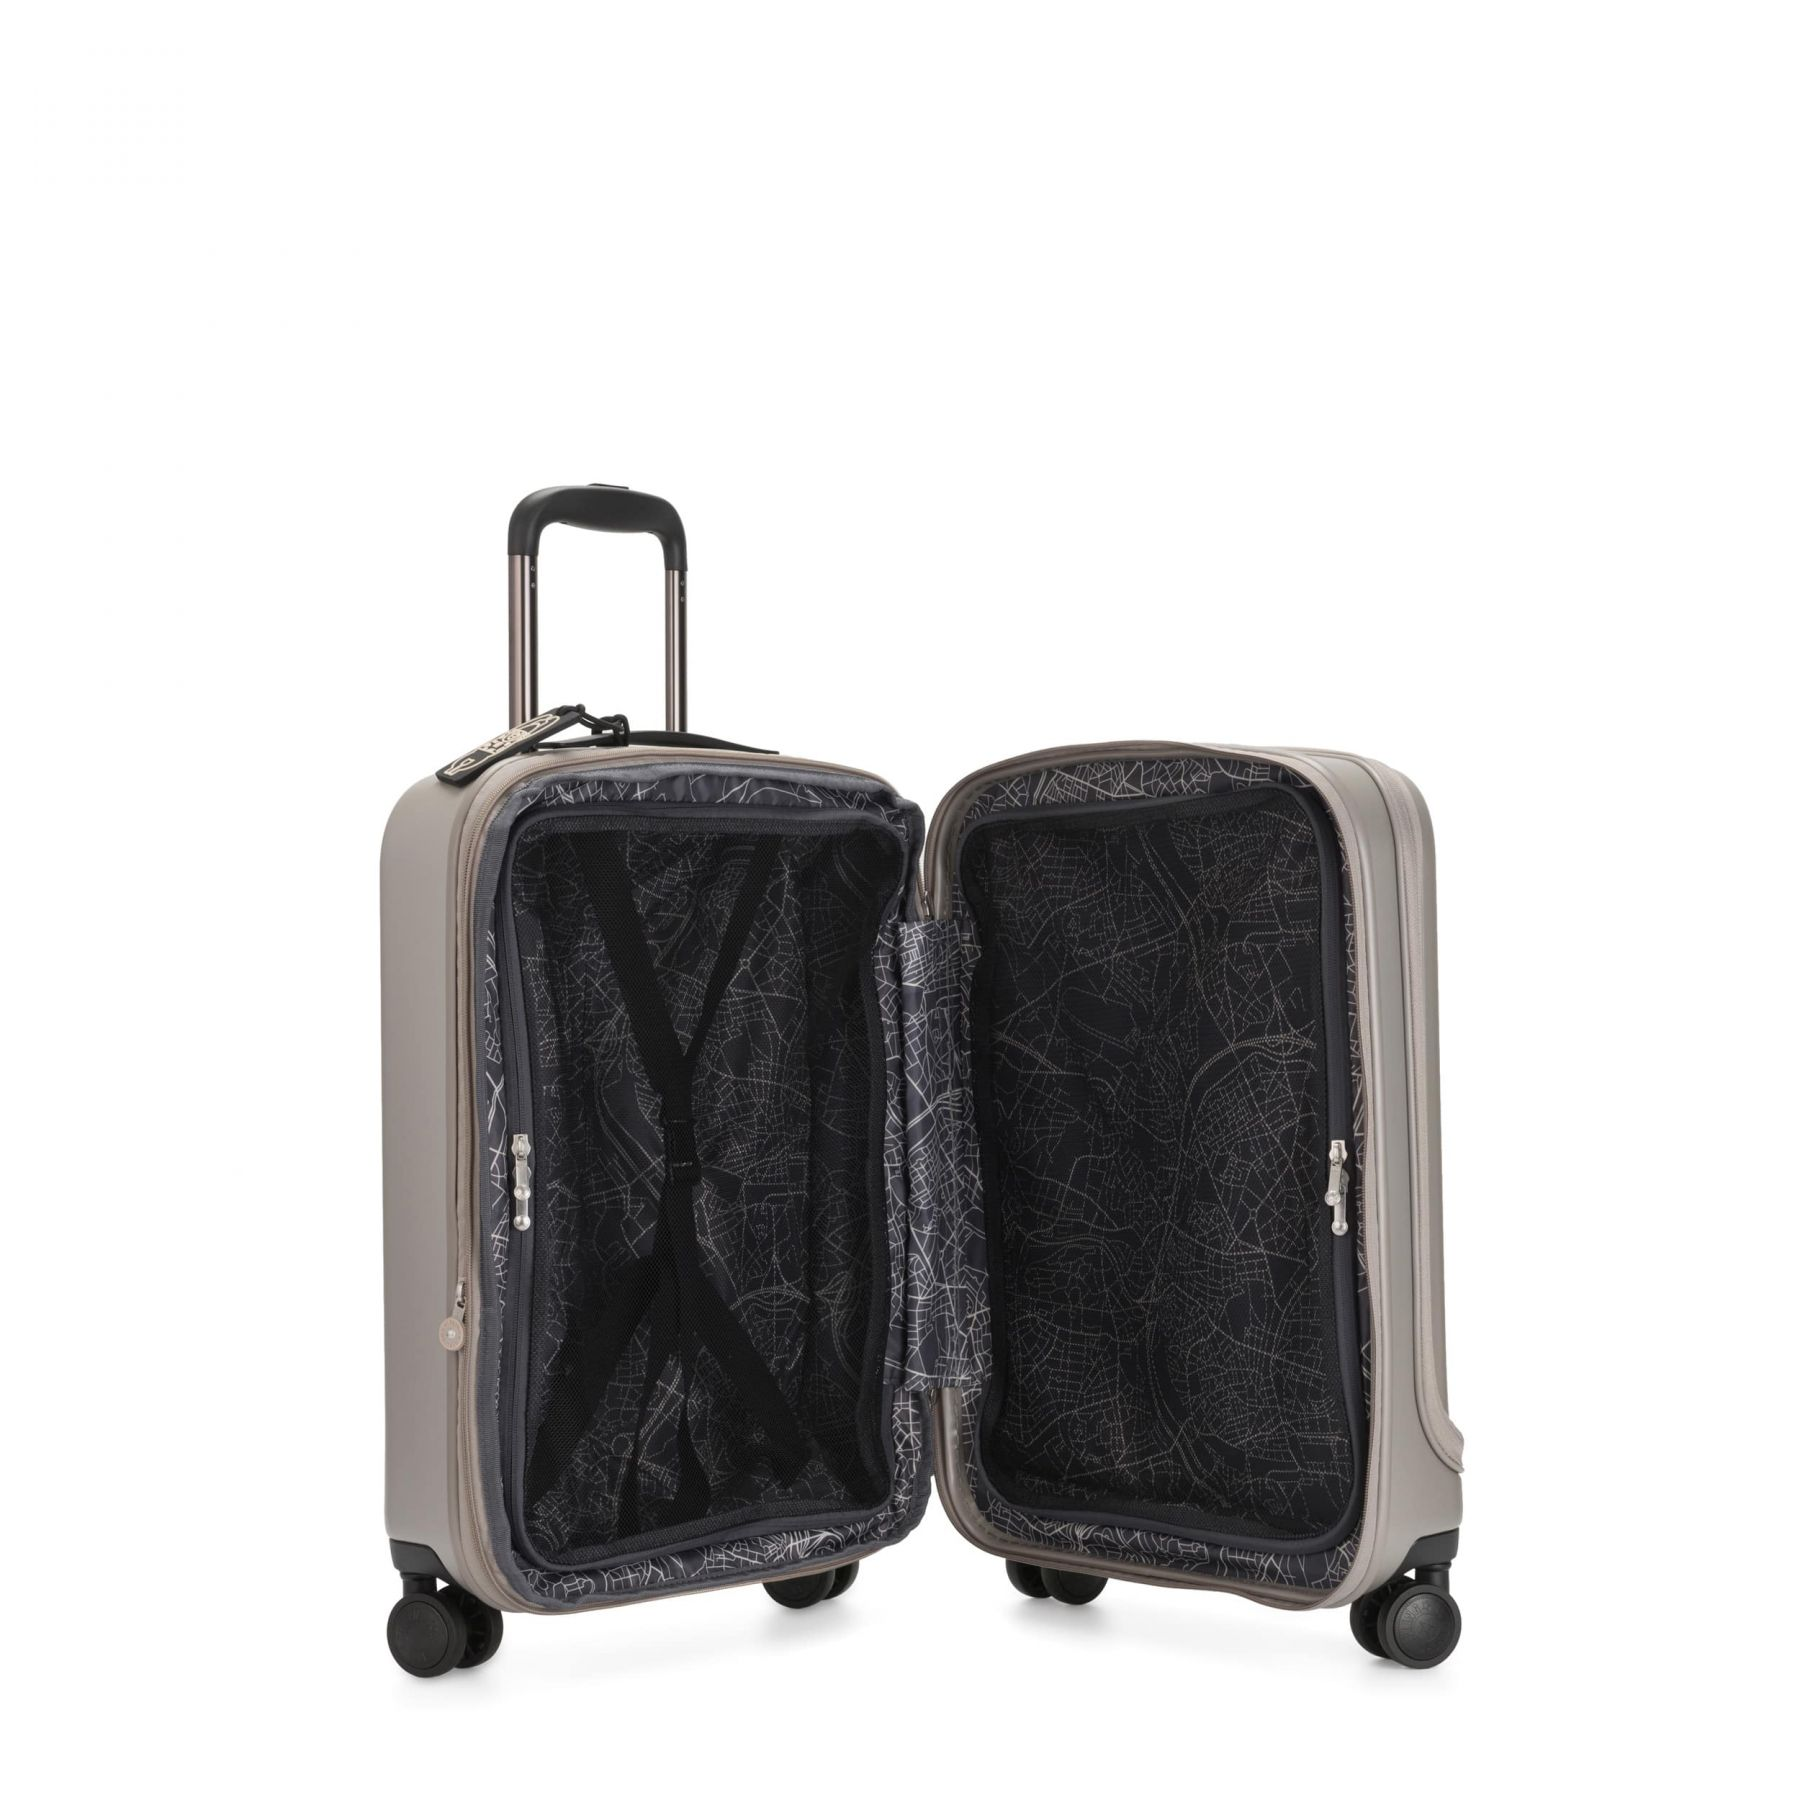 CURIOSITY PKT Latest Luggage by Kipling - Inside view